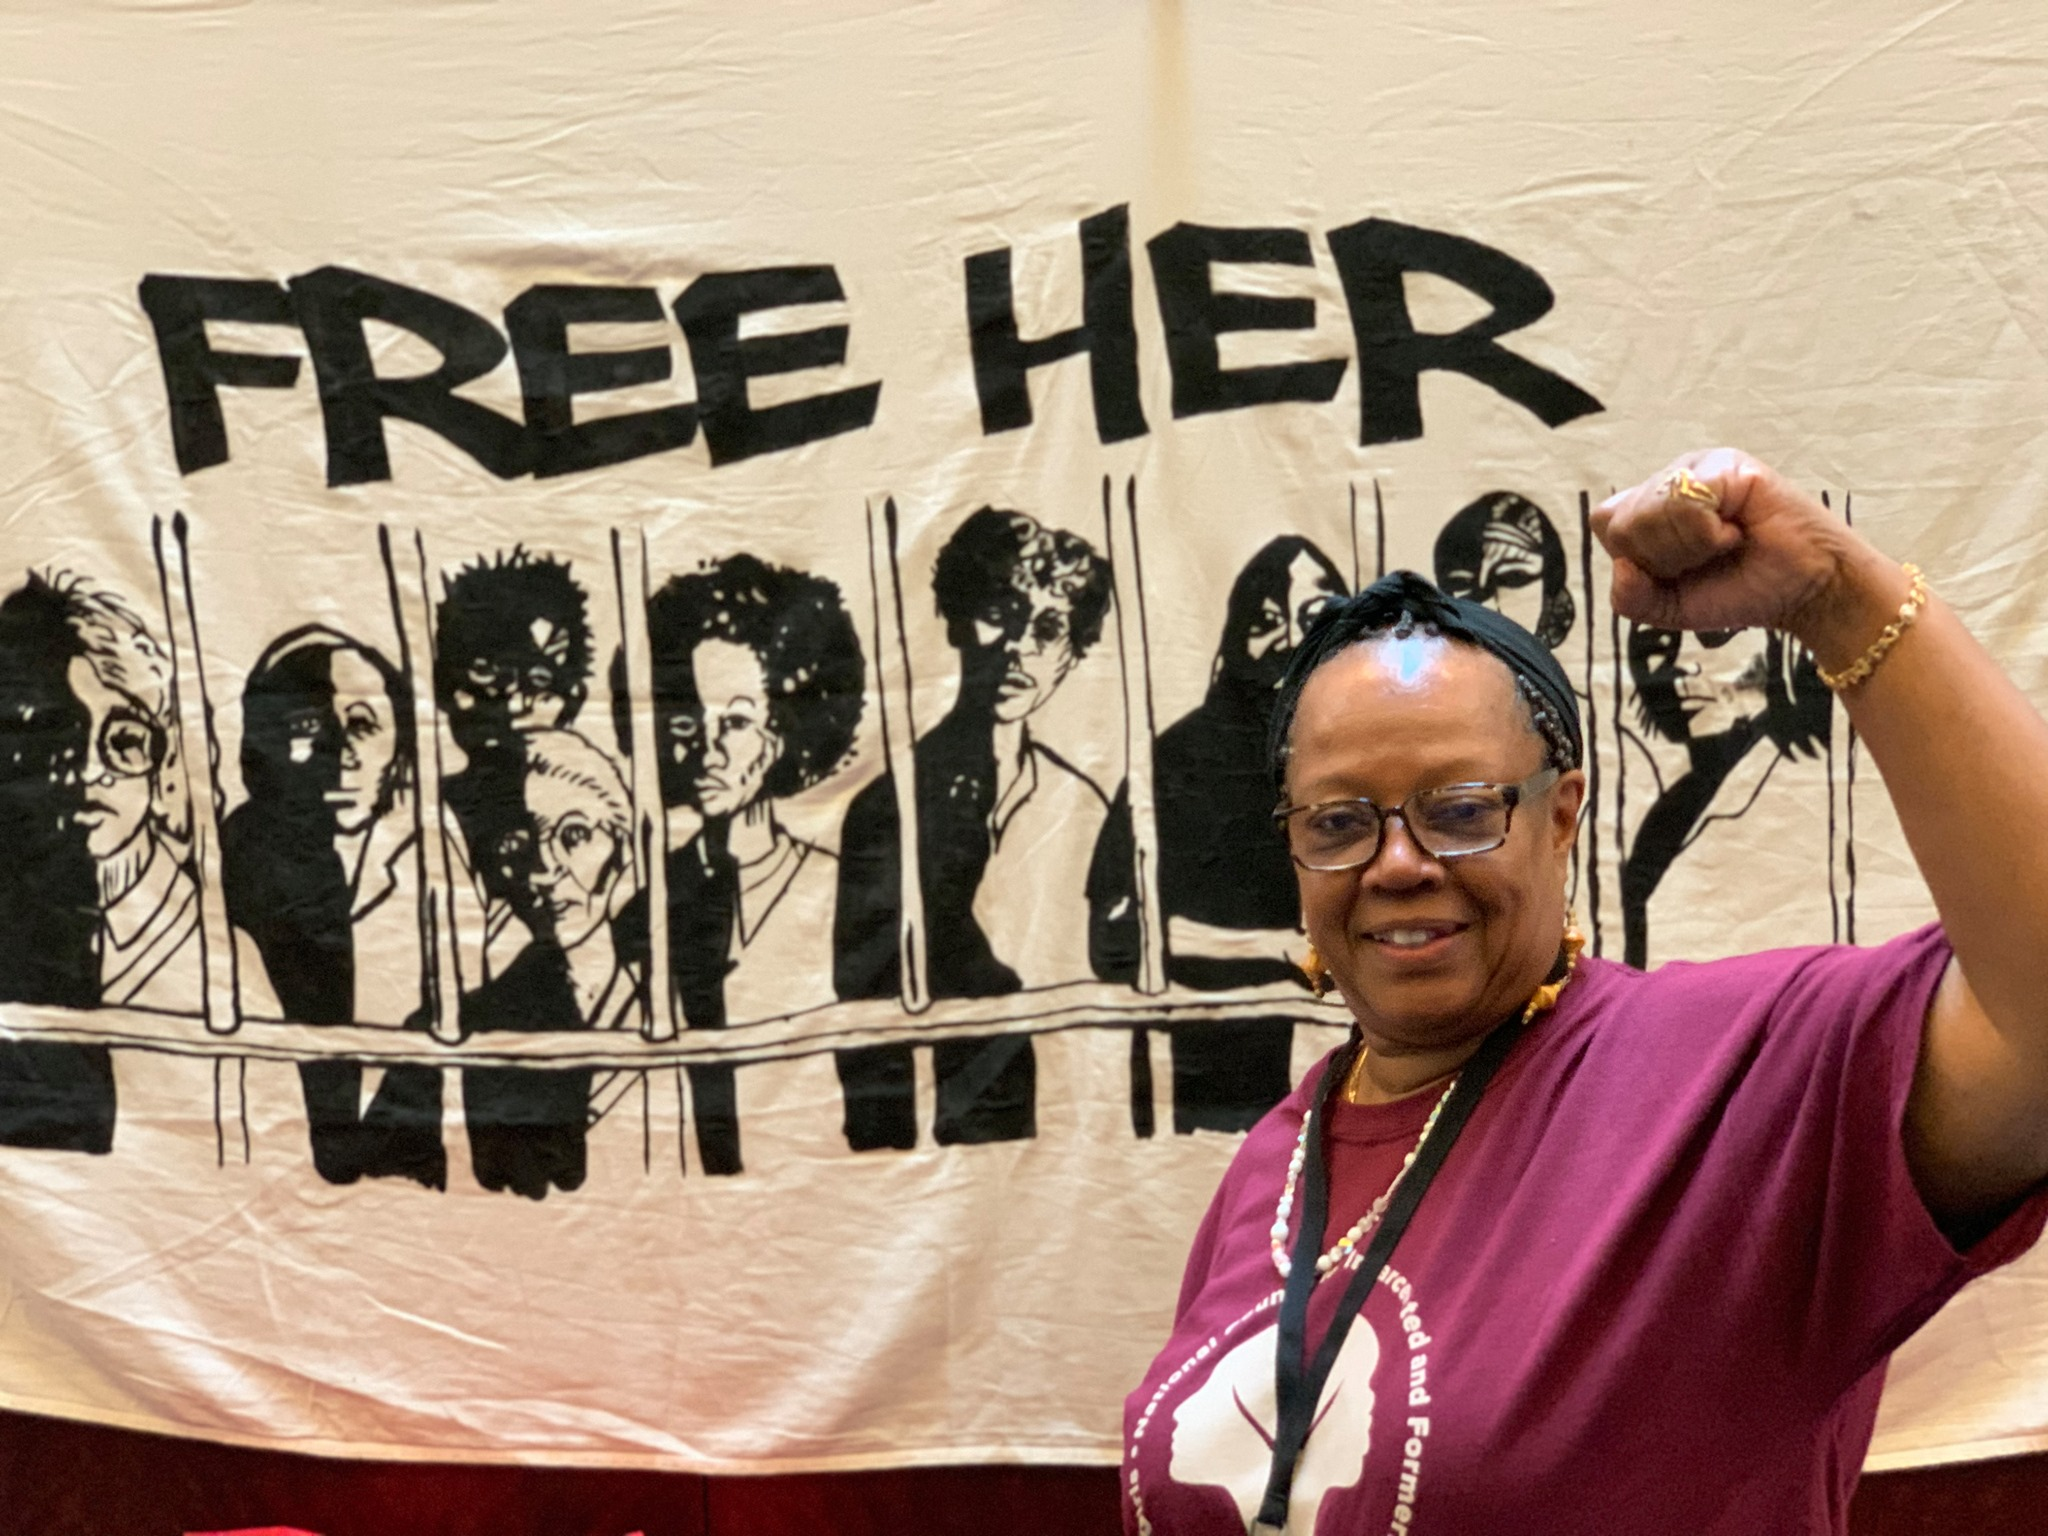 Pictures speak volumes and making news #FreeHer